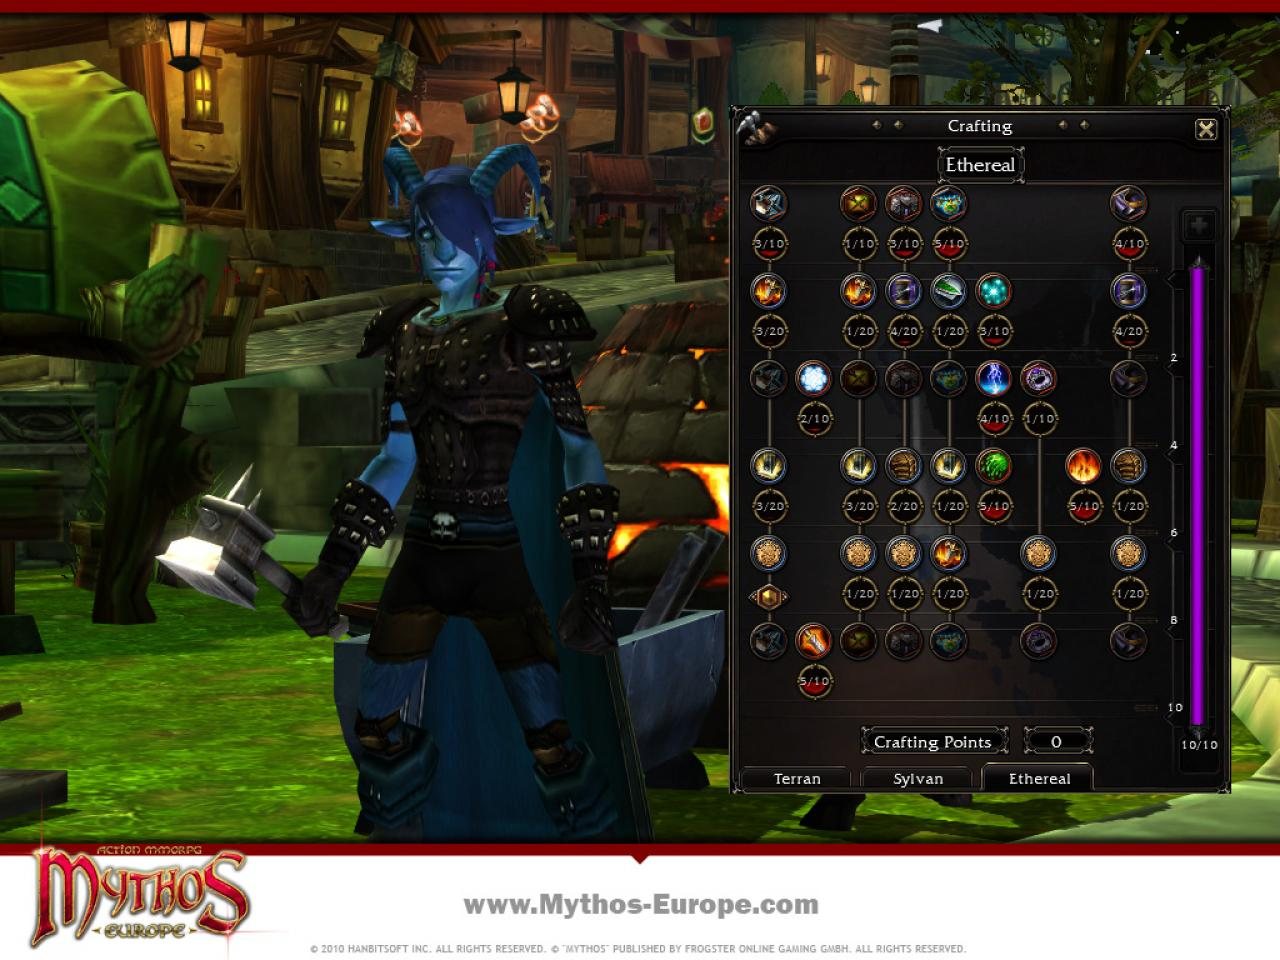 [15/11/10] Bilder zum Crafting-System in Mythos